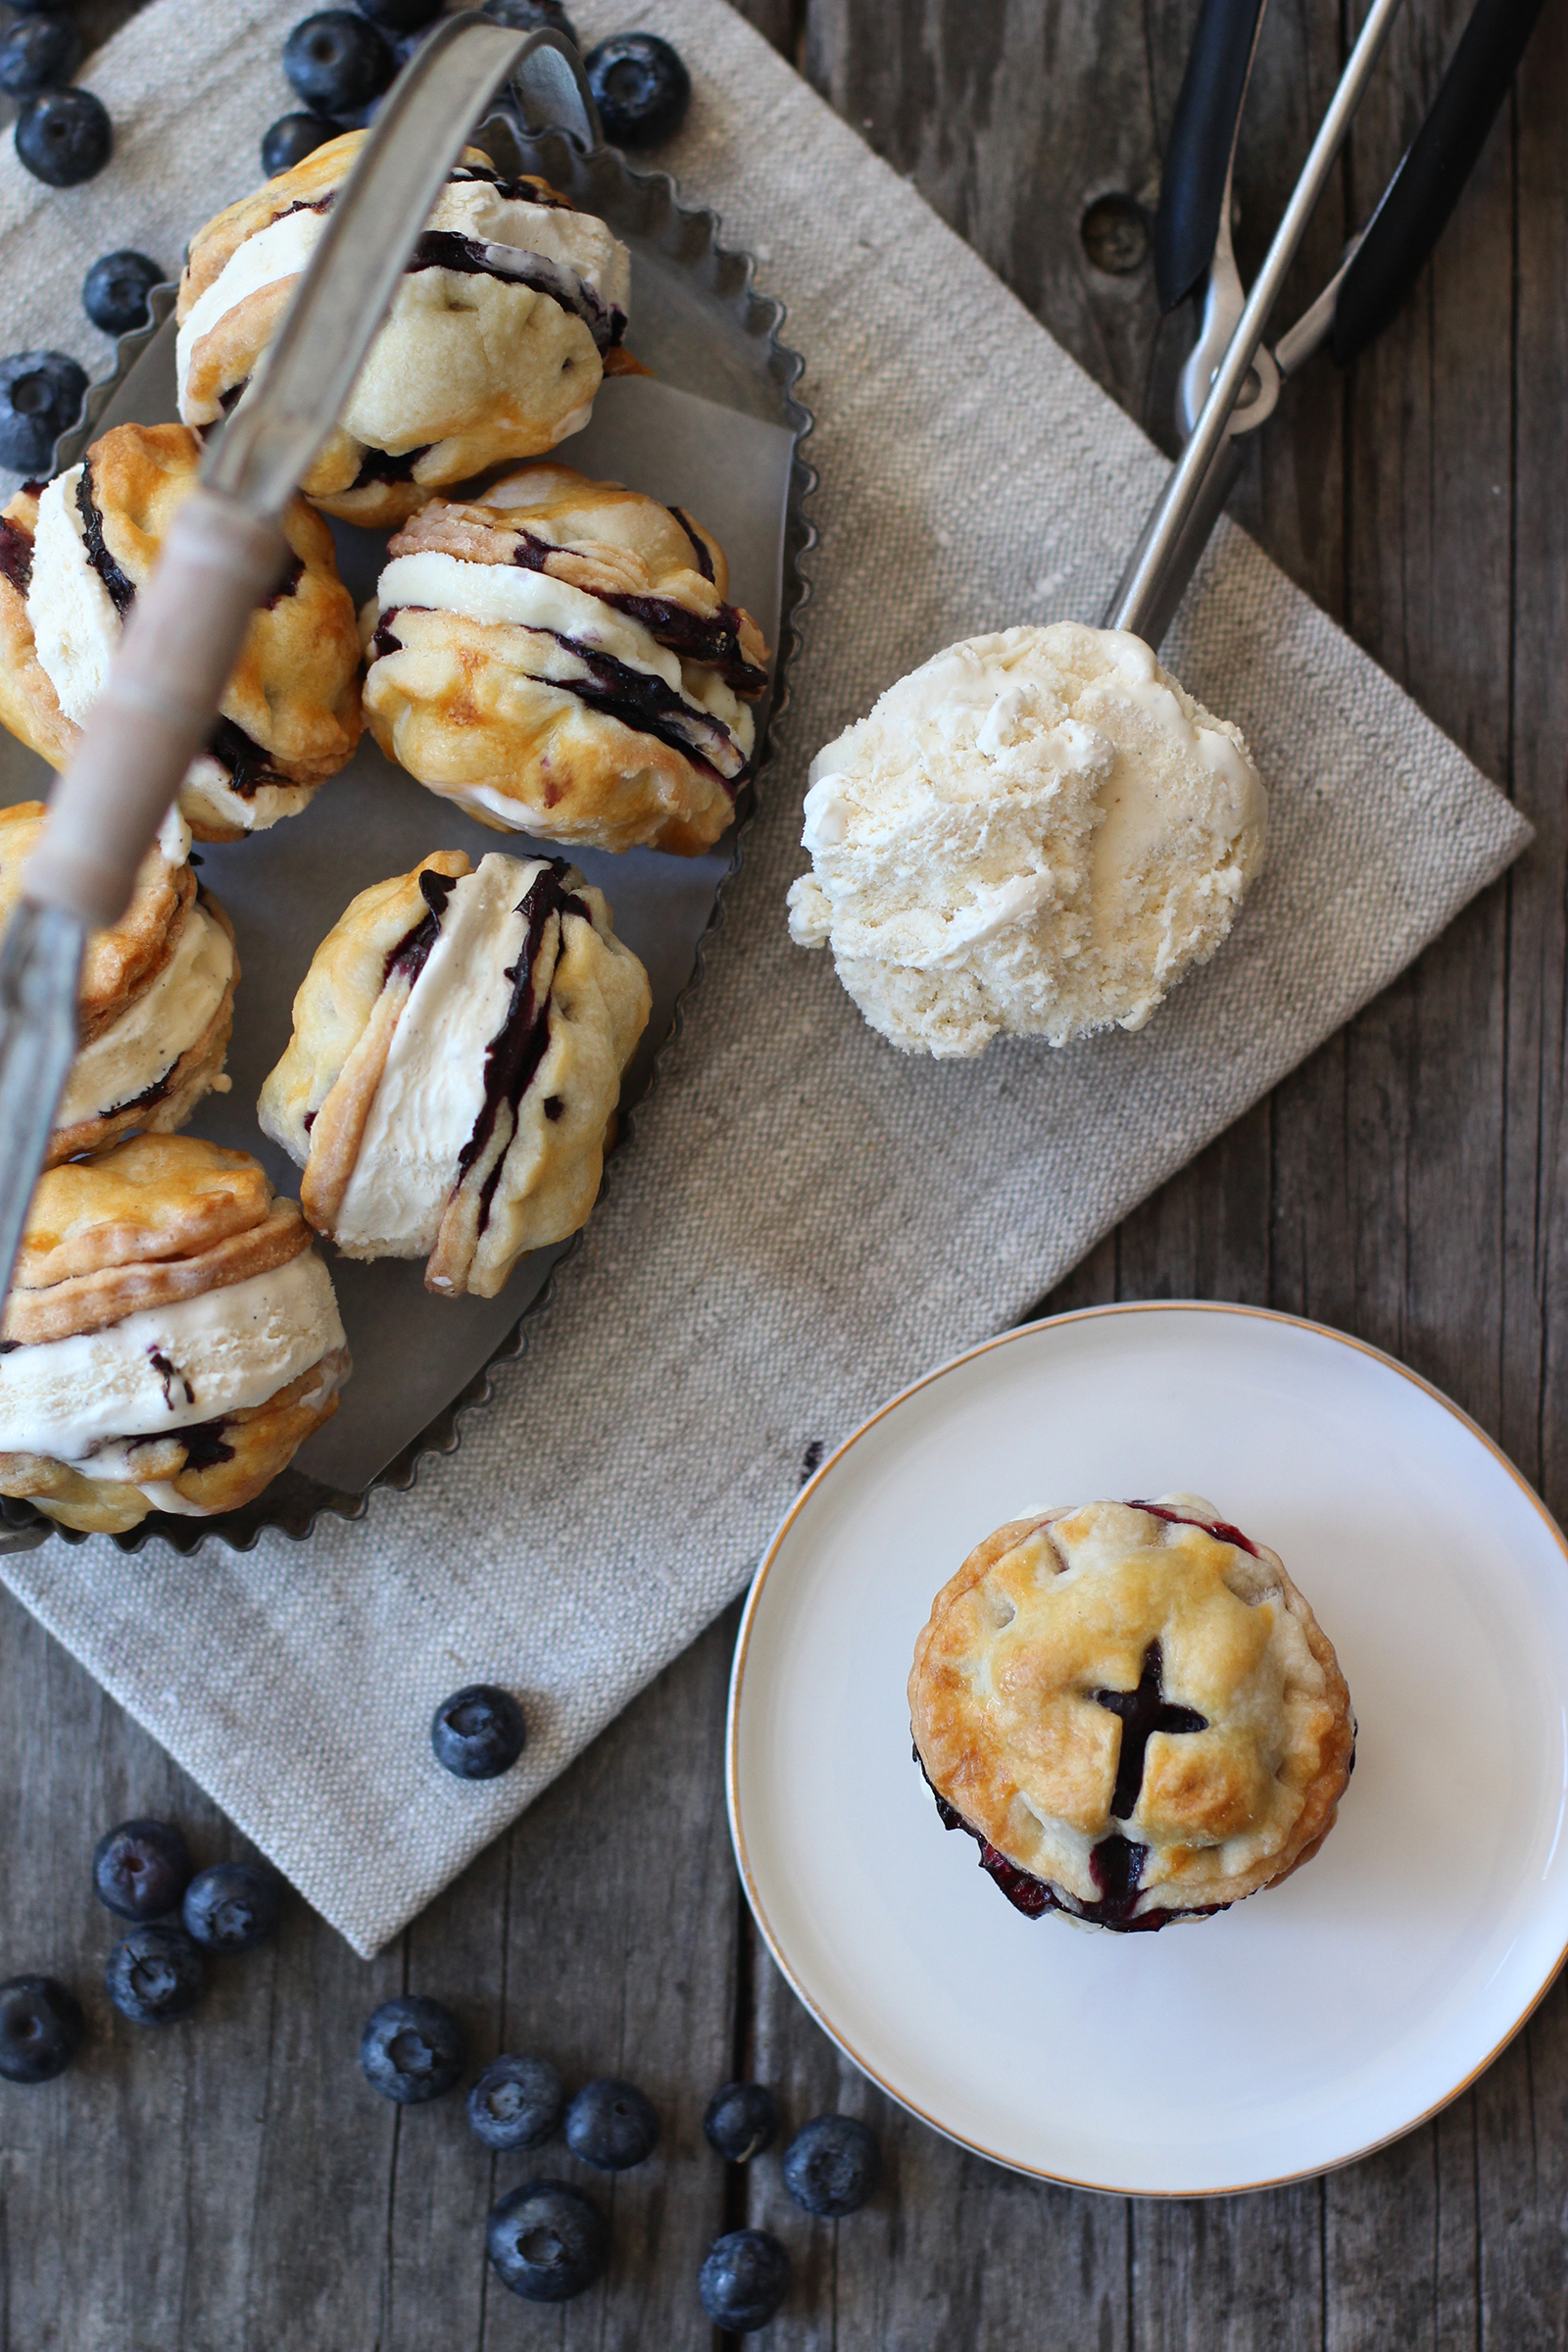 Blueberry Pie Ice Cream Sandwiches